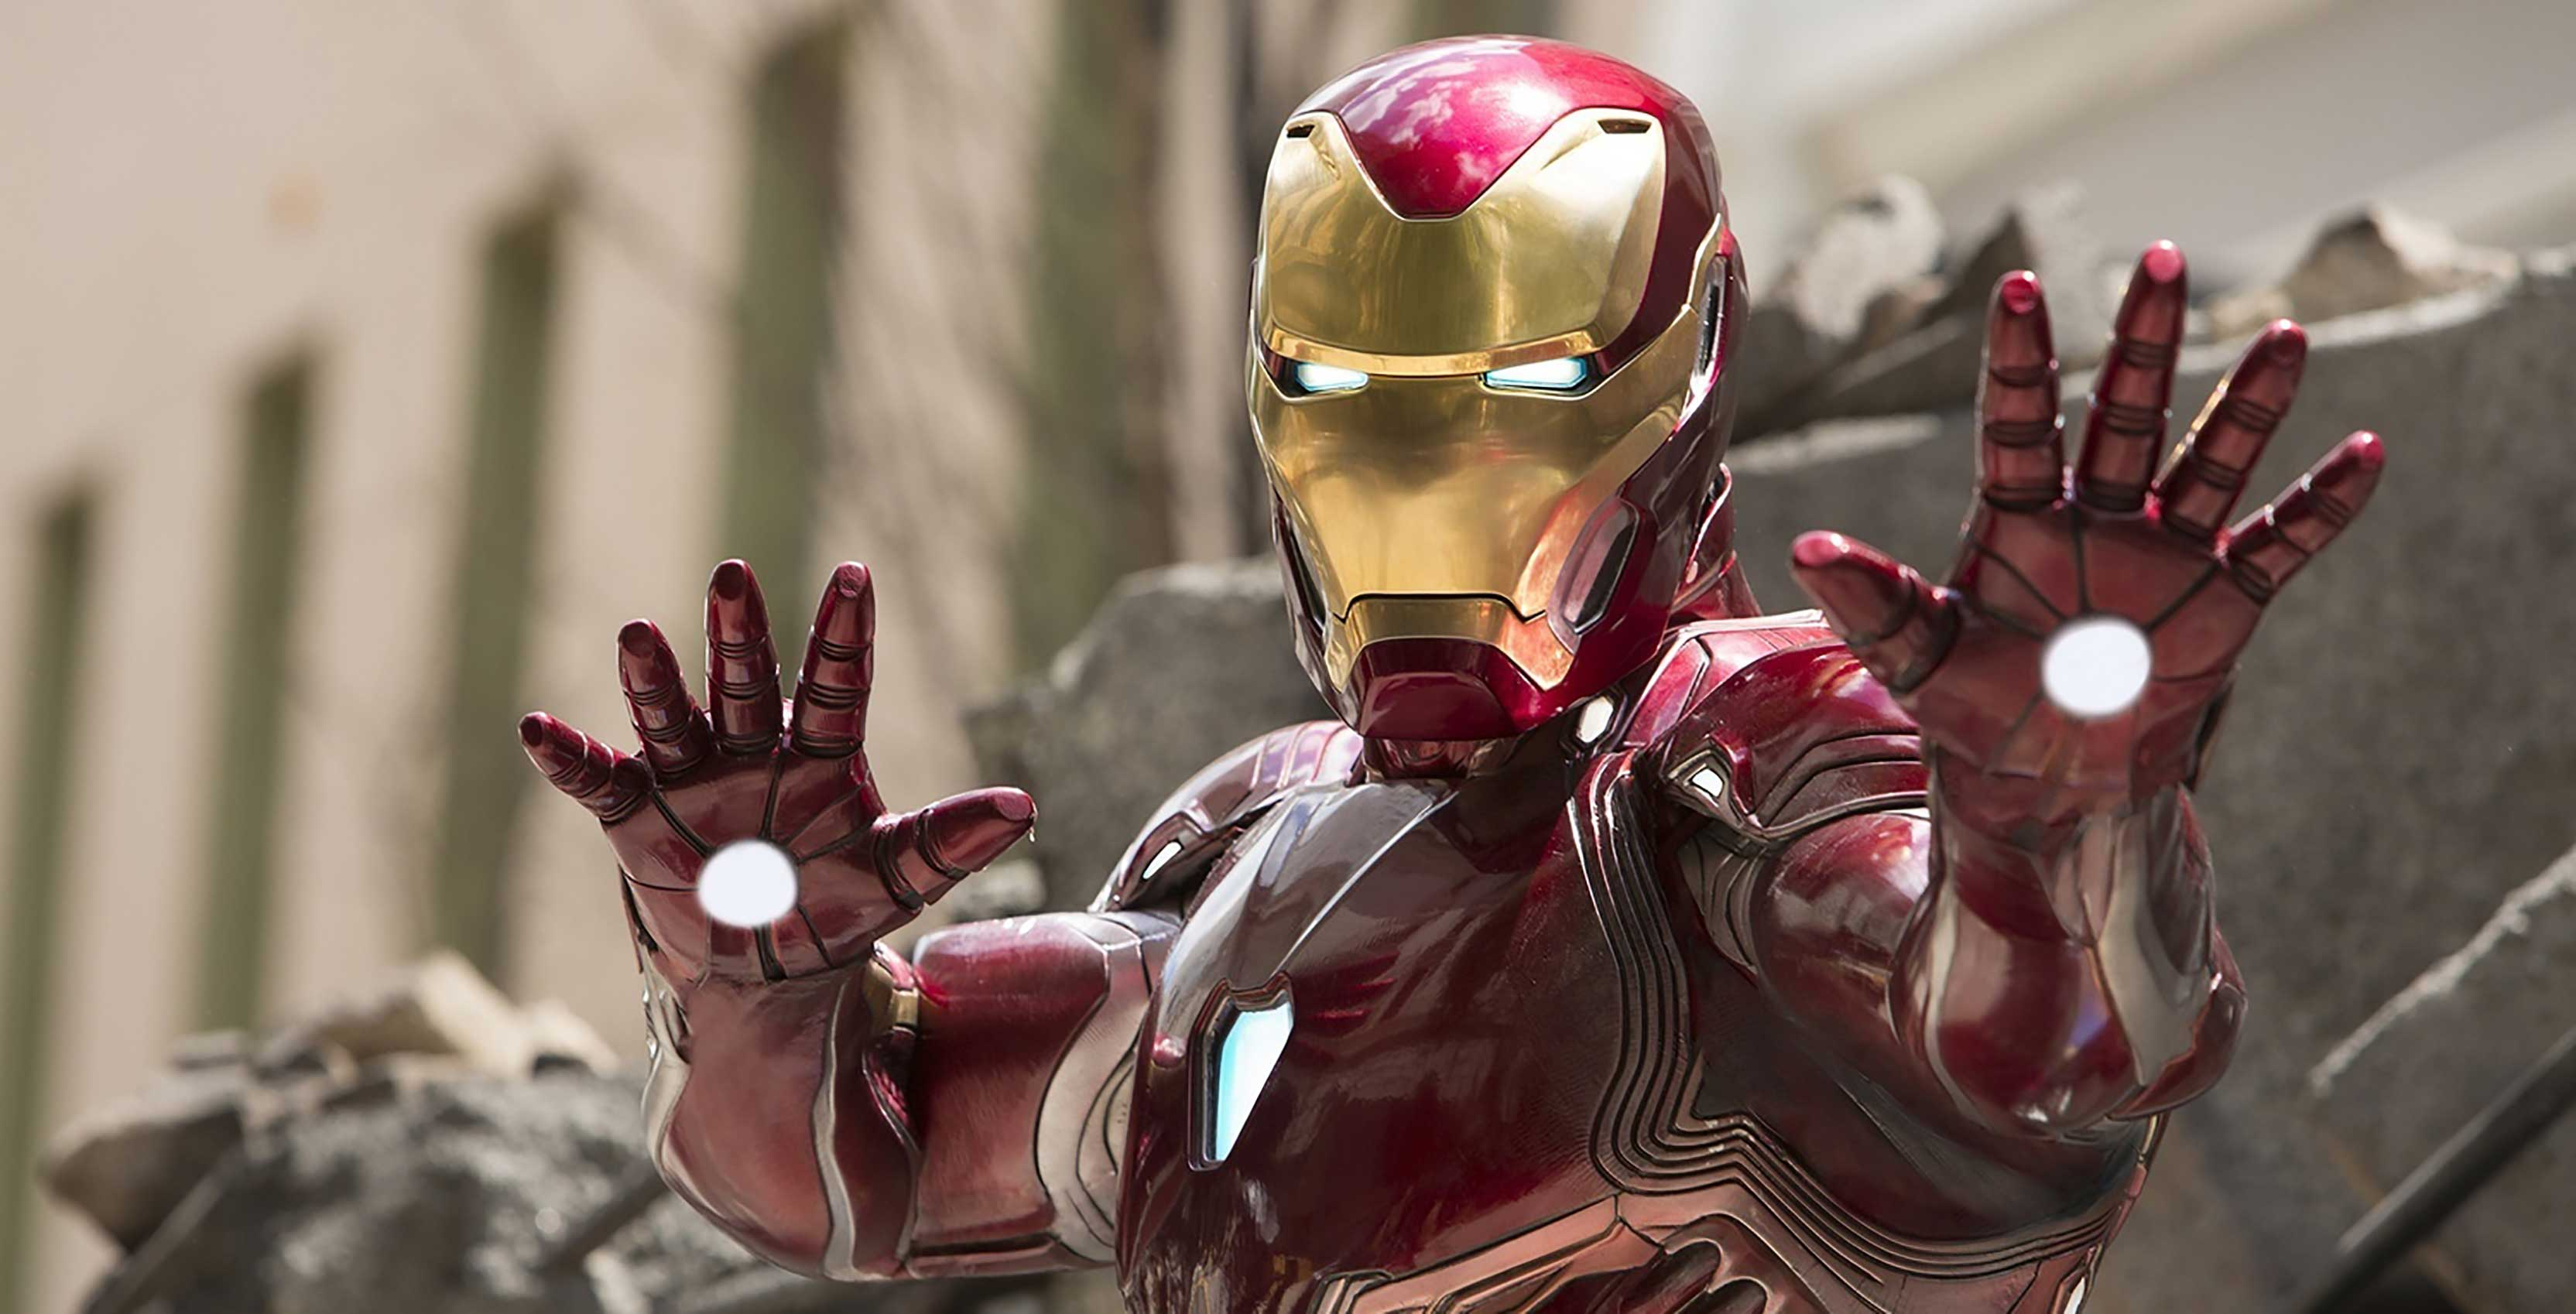 Tony Stark was not fictional- An iron man suit exists that can fly!